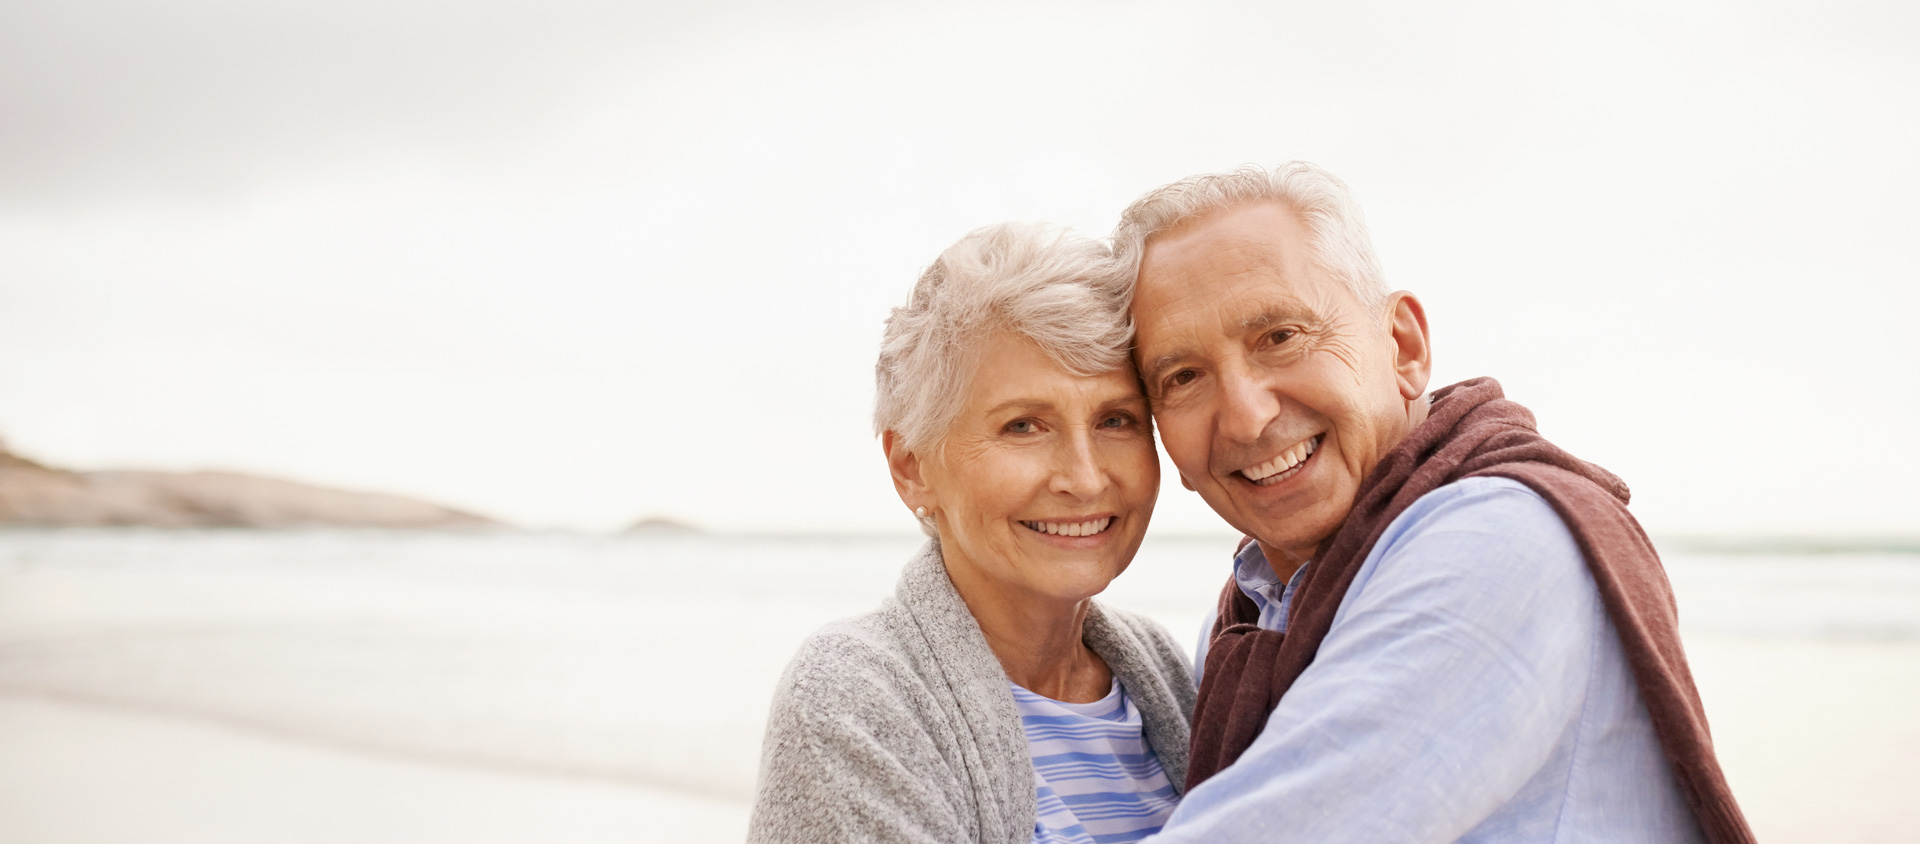 You're never too old to improve your smile